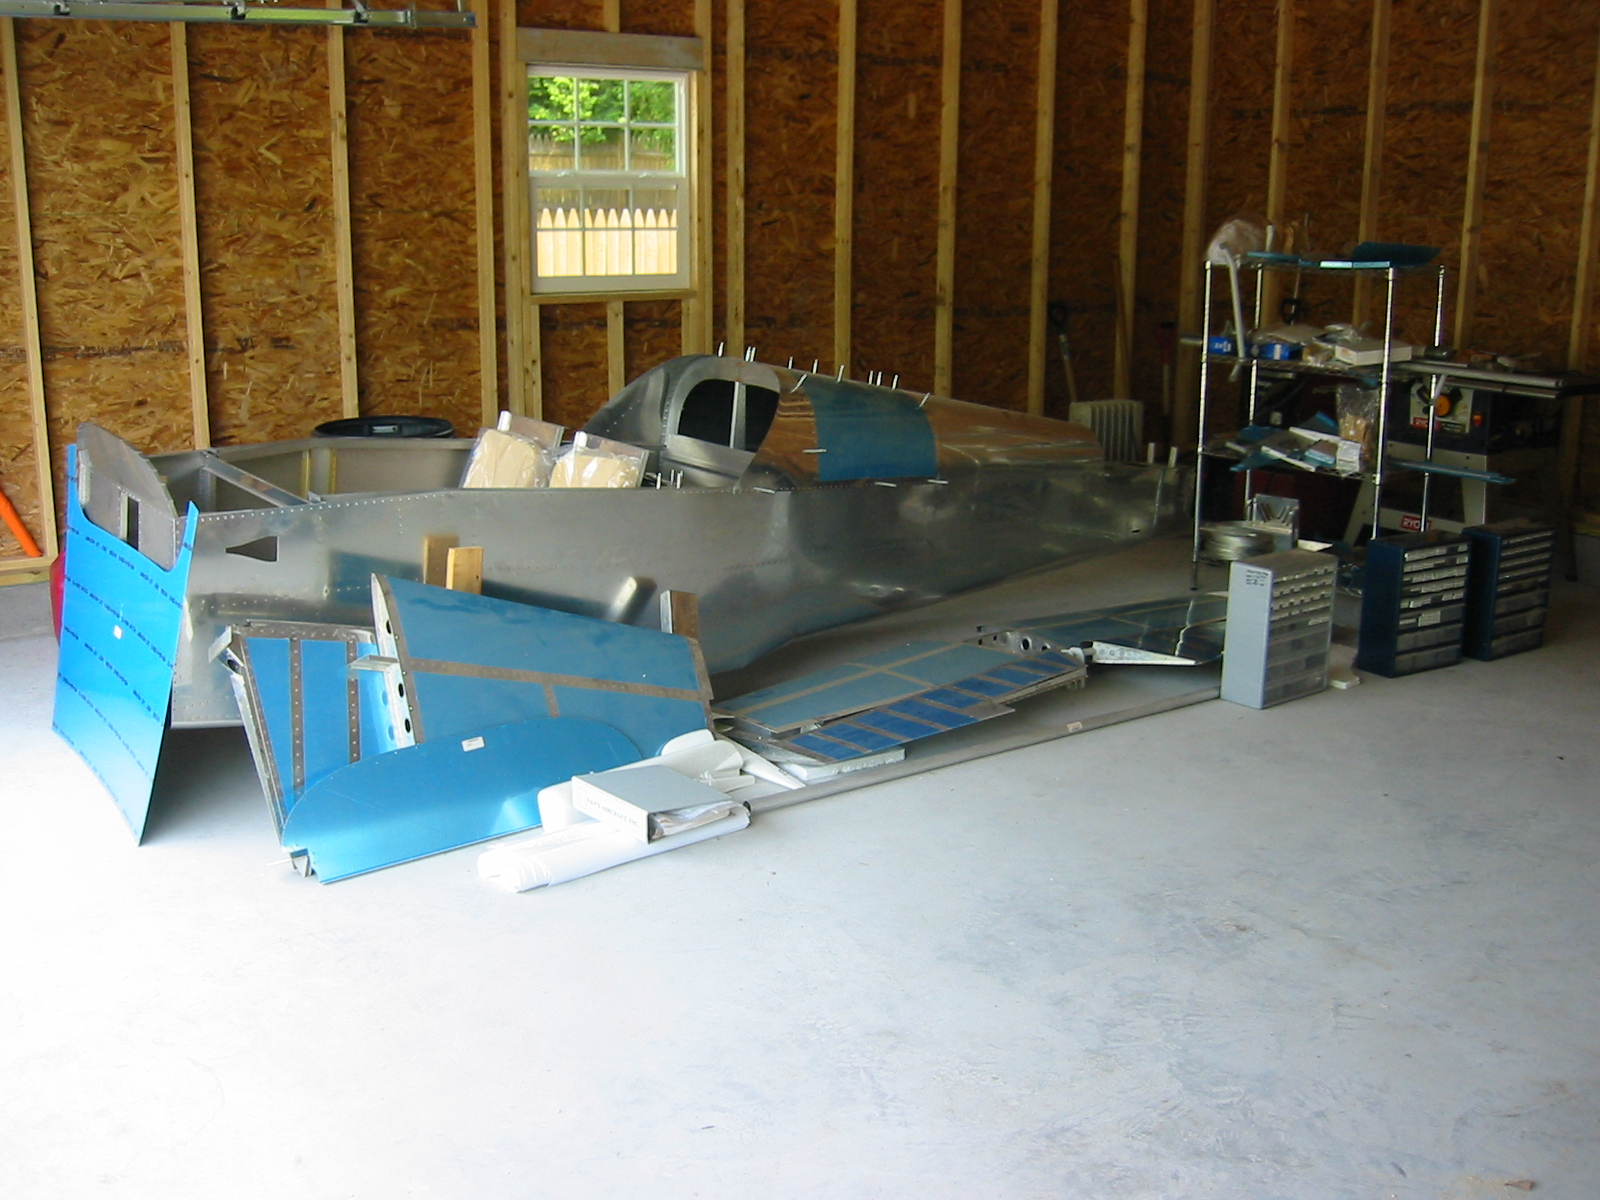 Matronics Email Lists View Topic Rv 7 Quick Build